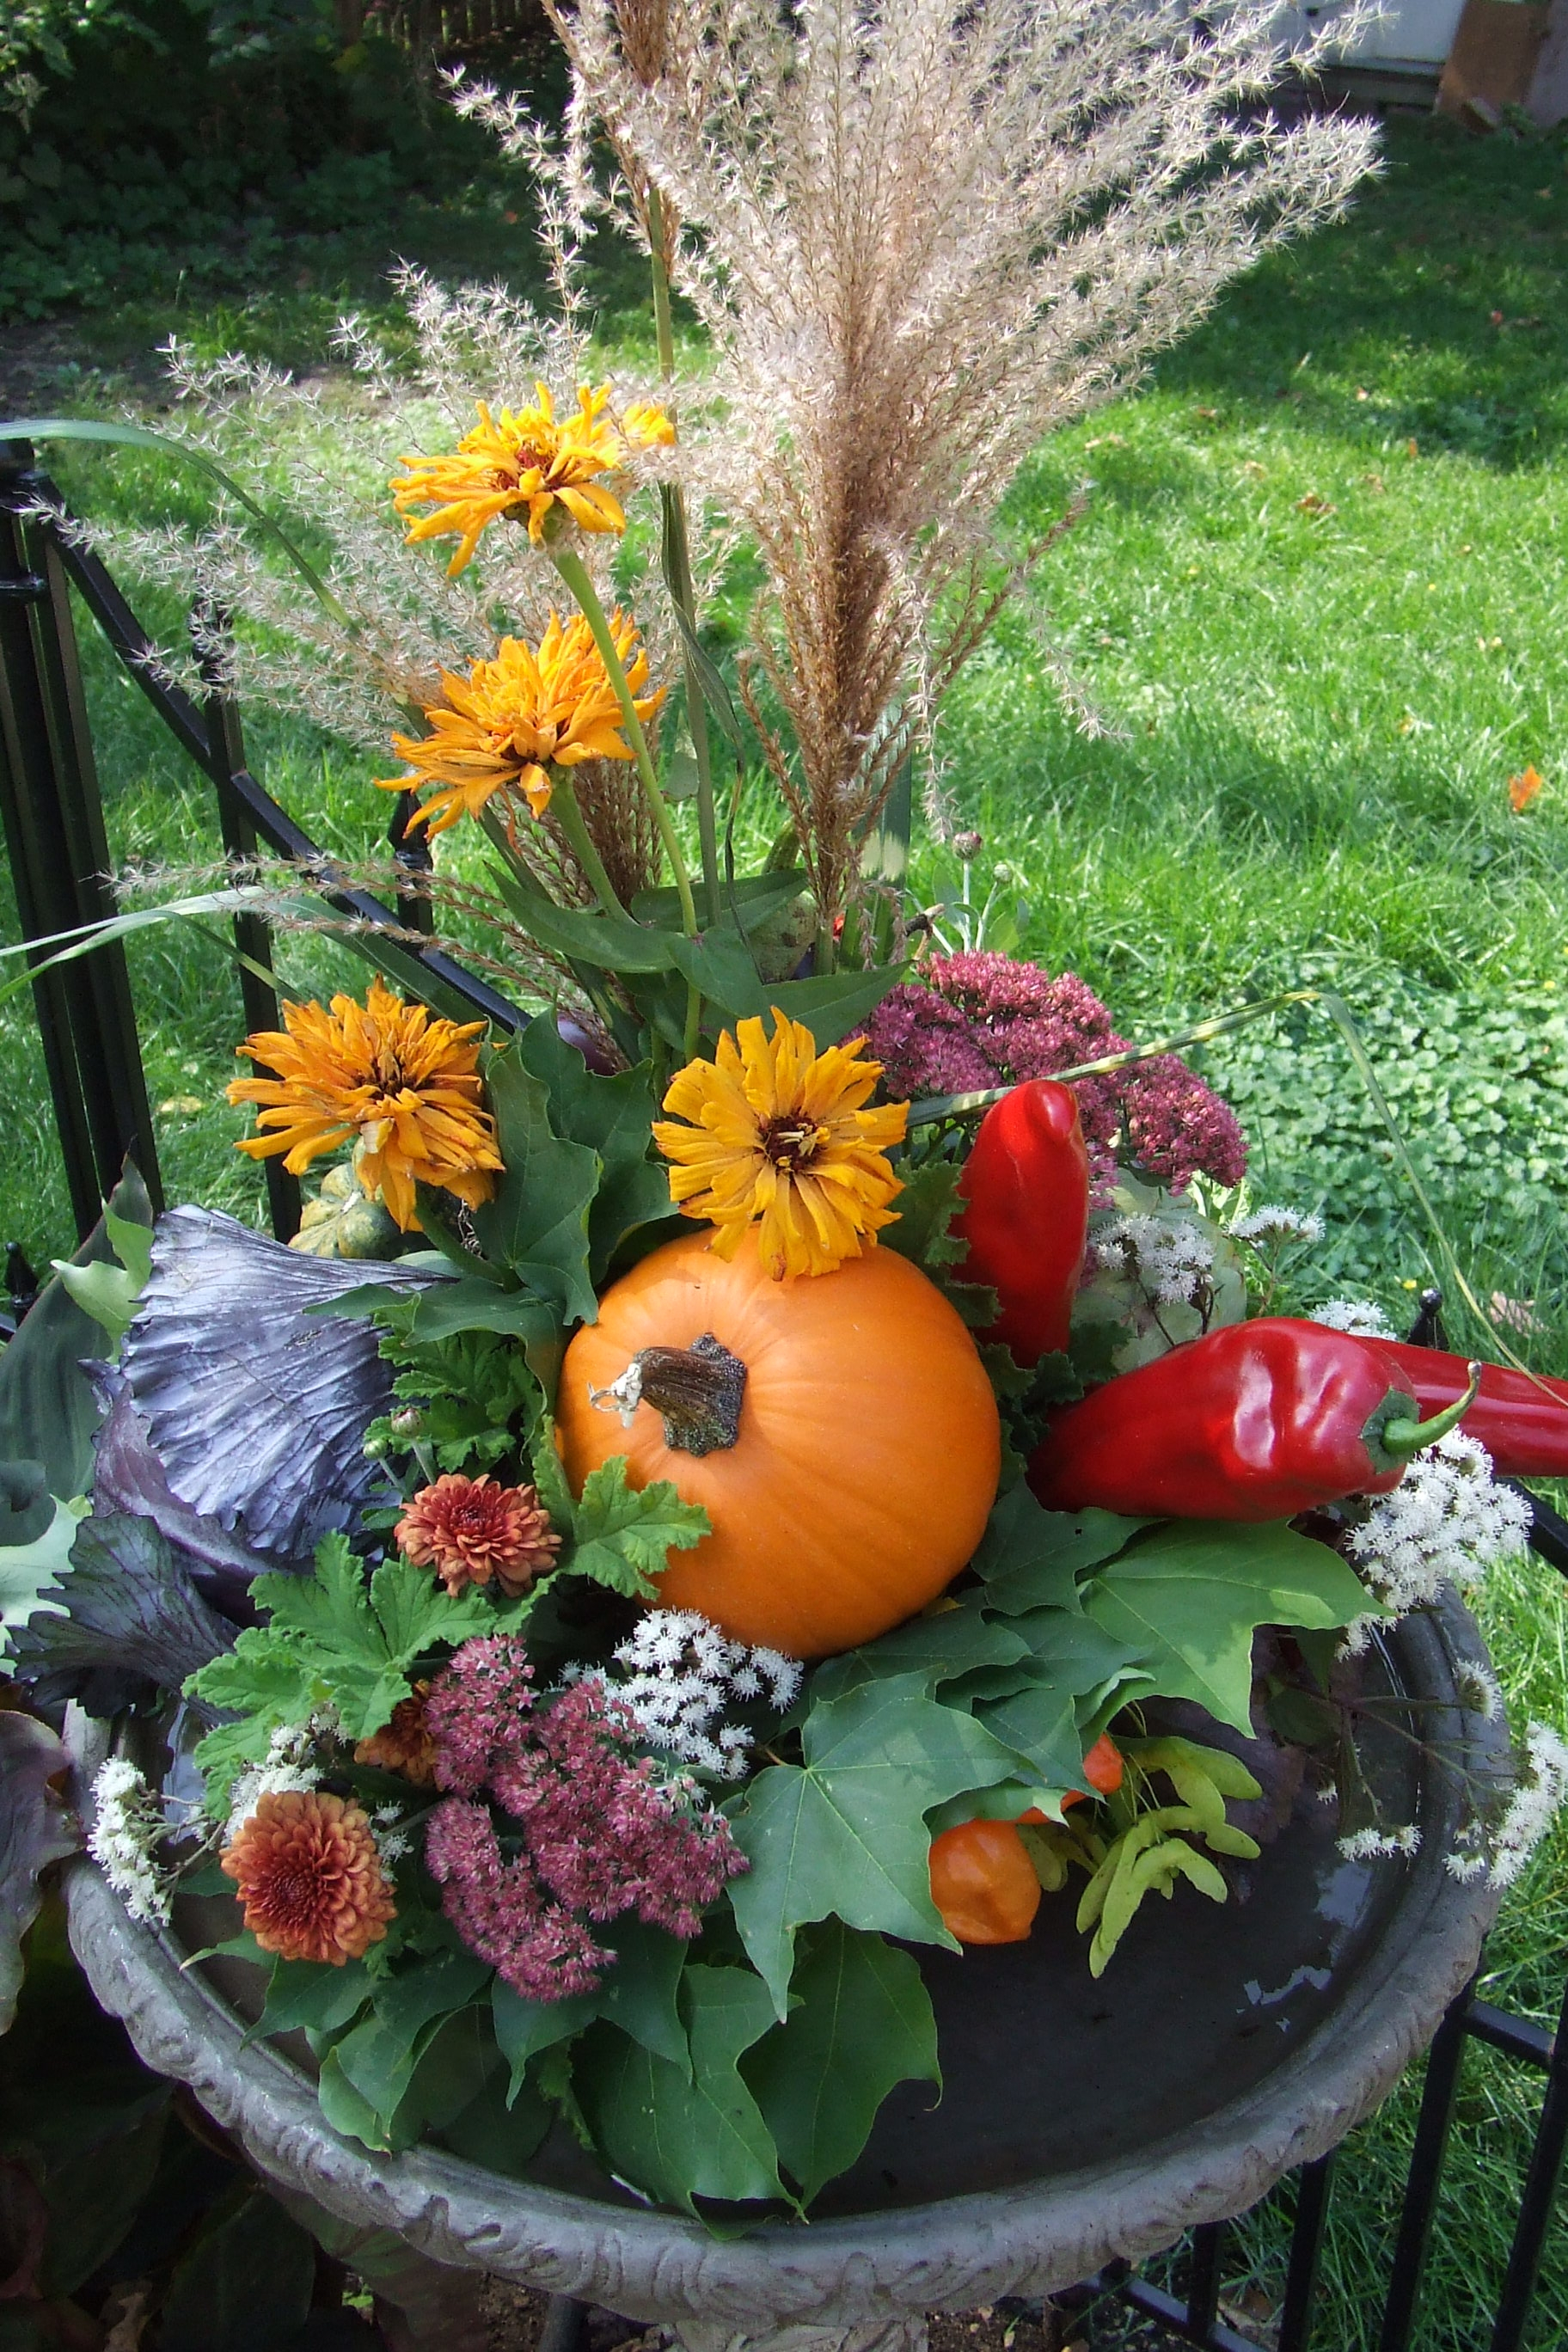 Vegetables are beautiful tim latimer quilts etc for Beautiful vegetable garden designs